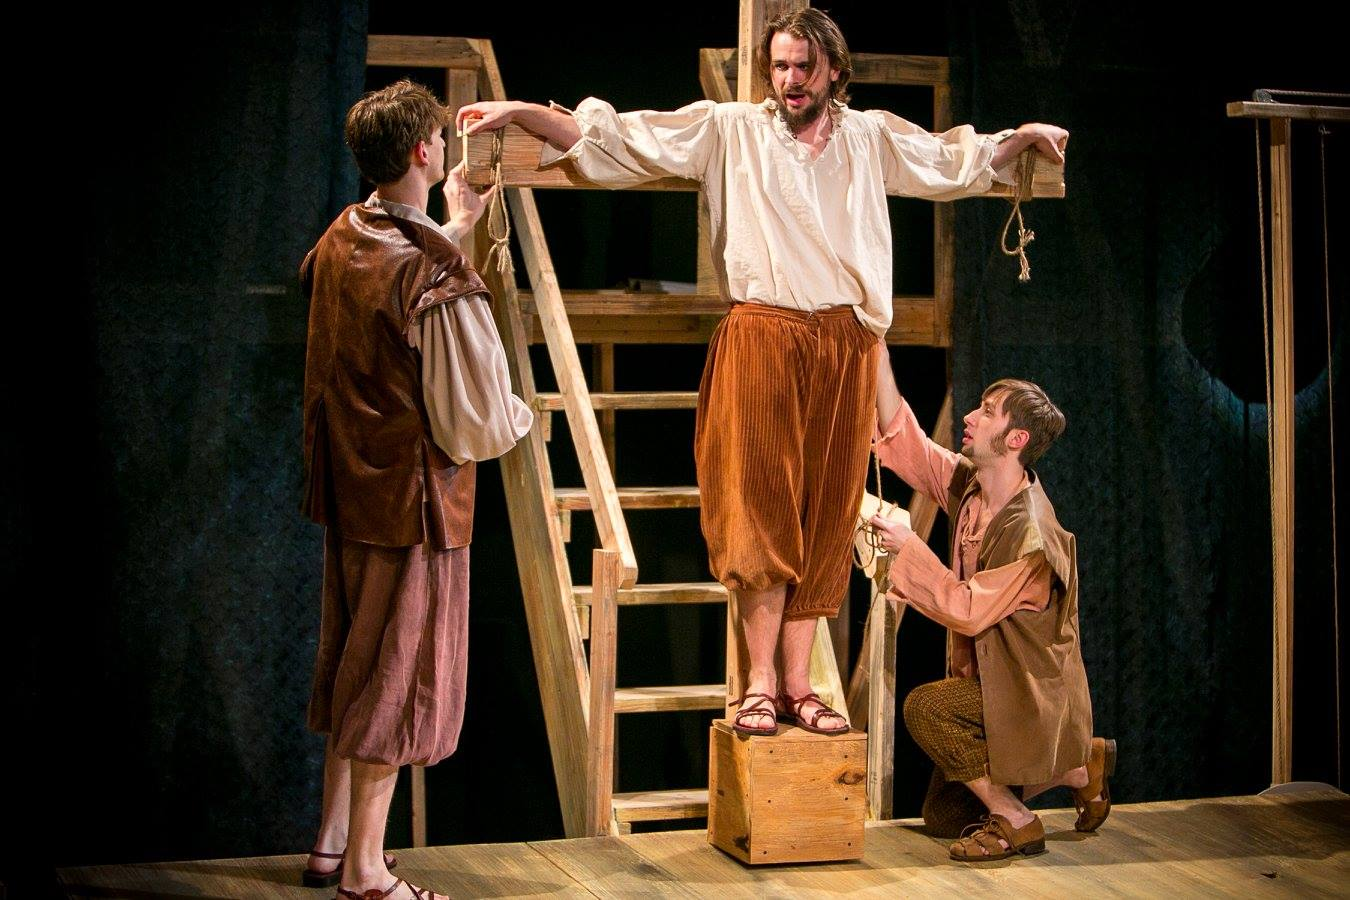 Carpenter 1, James, and Carpenter 2 in Act 1 of Sarah Ruhl's Passion Play costume design by Katharine Tarkulich